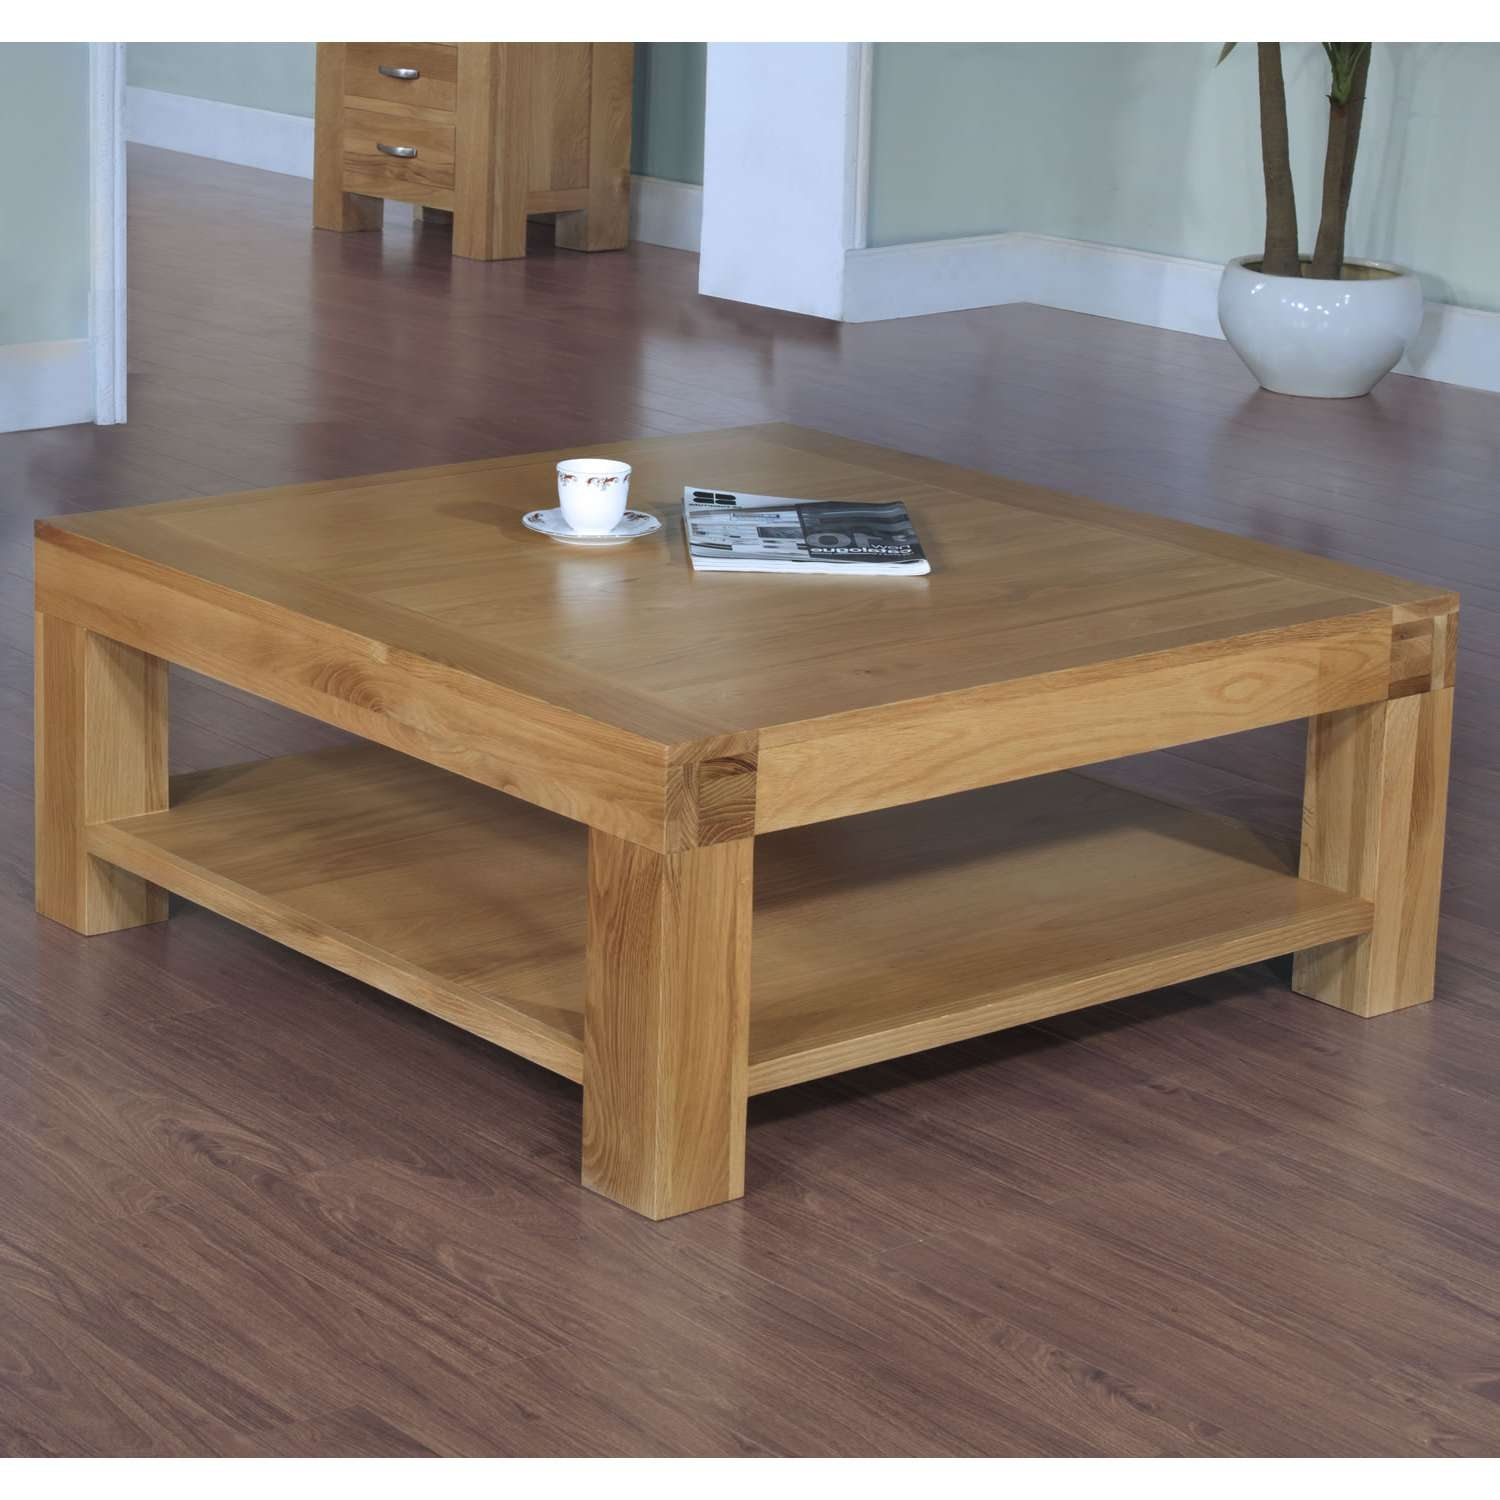 Coffee Table : Modern Coffee Tables Coffee Table With Storage Ikea For Best And Newest Square Coffee Tables With Storage (View 6 of 20)